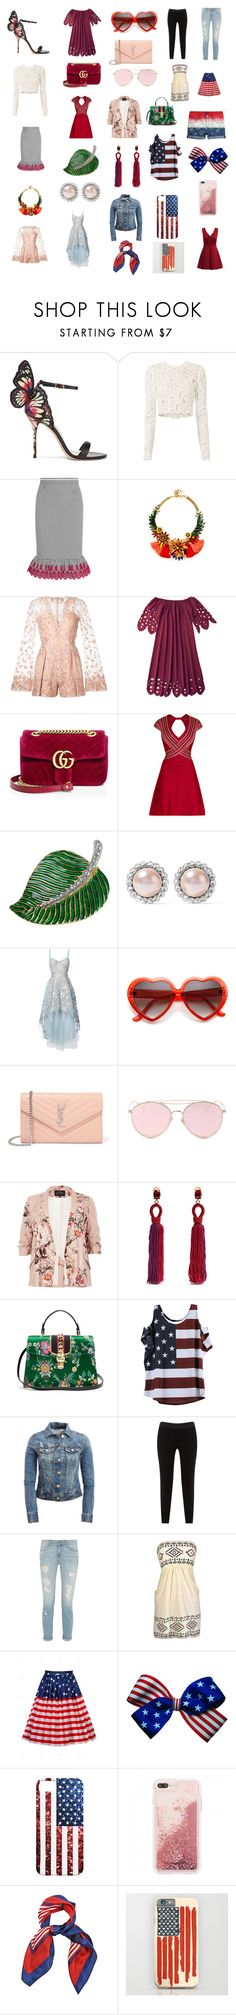 """""""Cute 2017"""" by mikahelaine ❤ liked on Polyvore featuring Sophia Webster, A.L.C., Altuzarra, Elizabeth Cole, Zuhair Murad, Gucci, Hervé Léger, Kenneth Jay Lane, Miu Miu and Notte by Marchesa"""